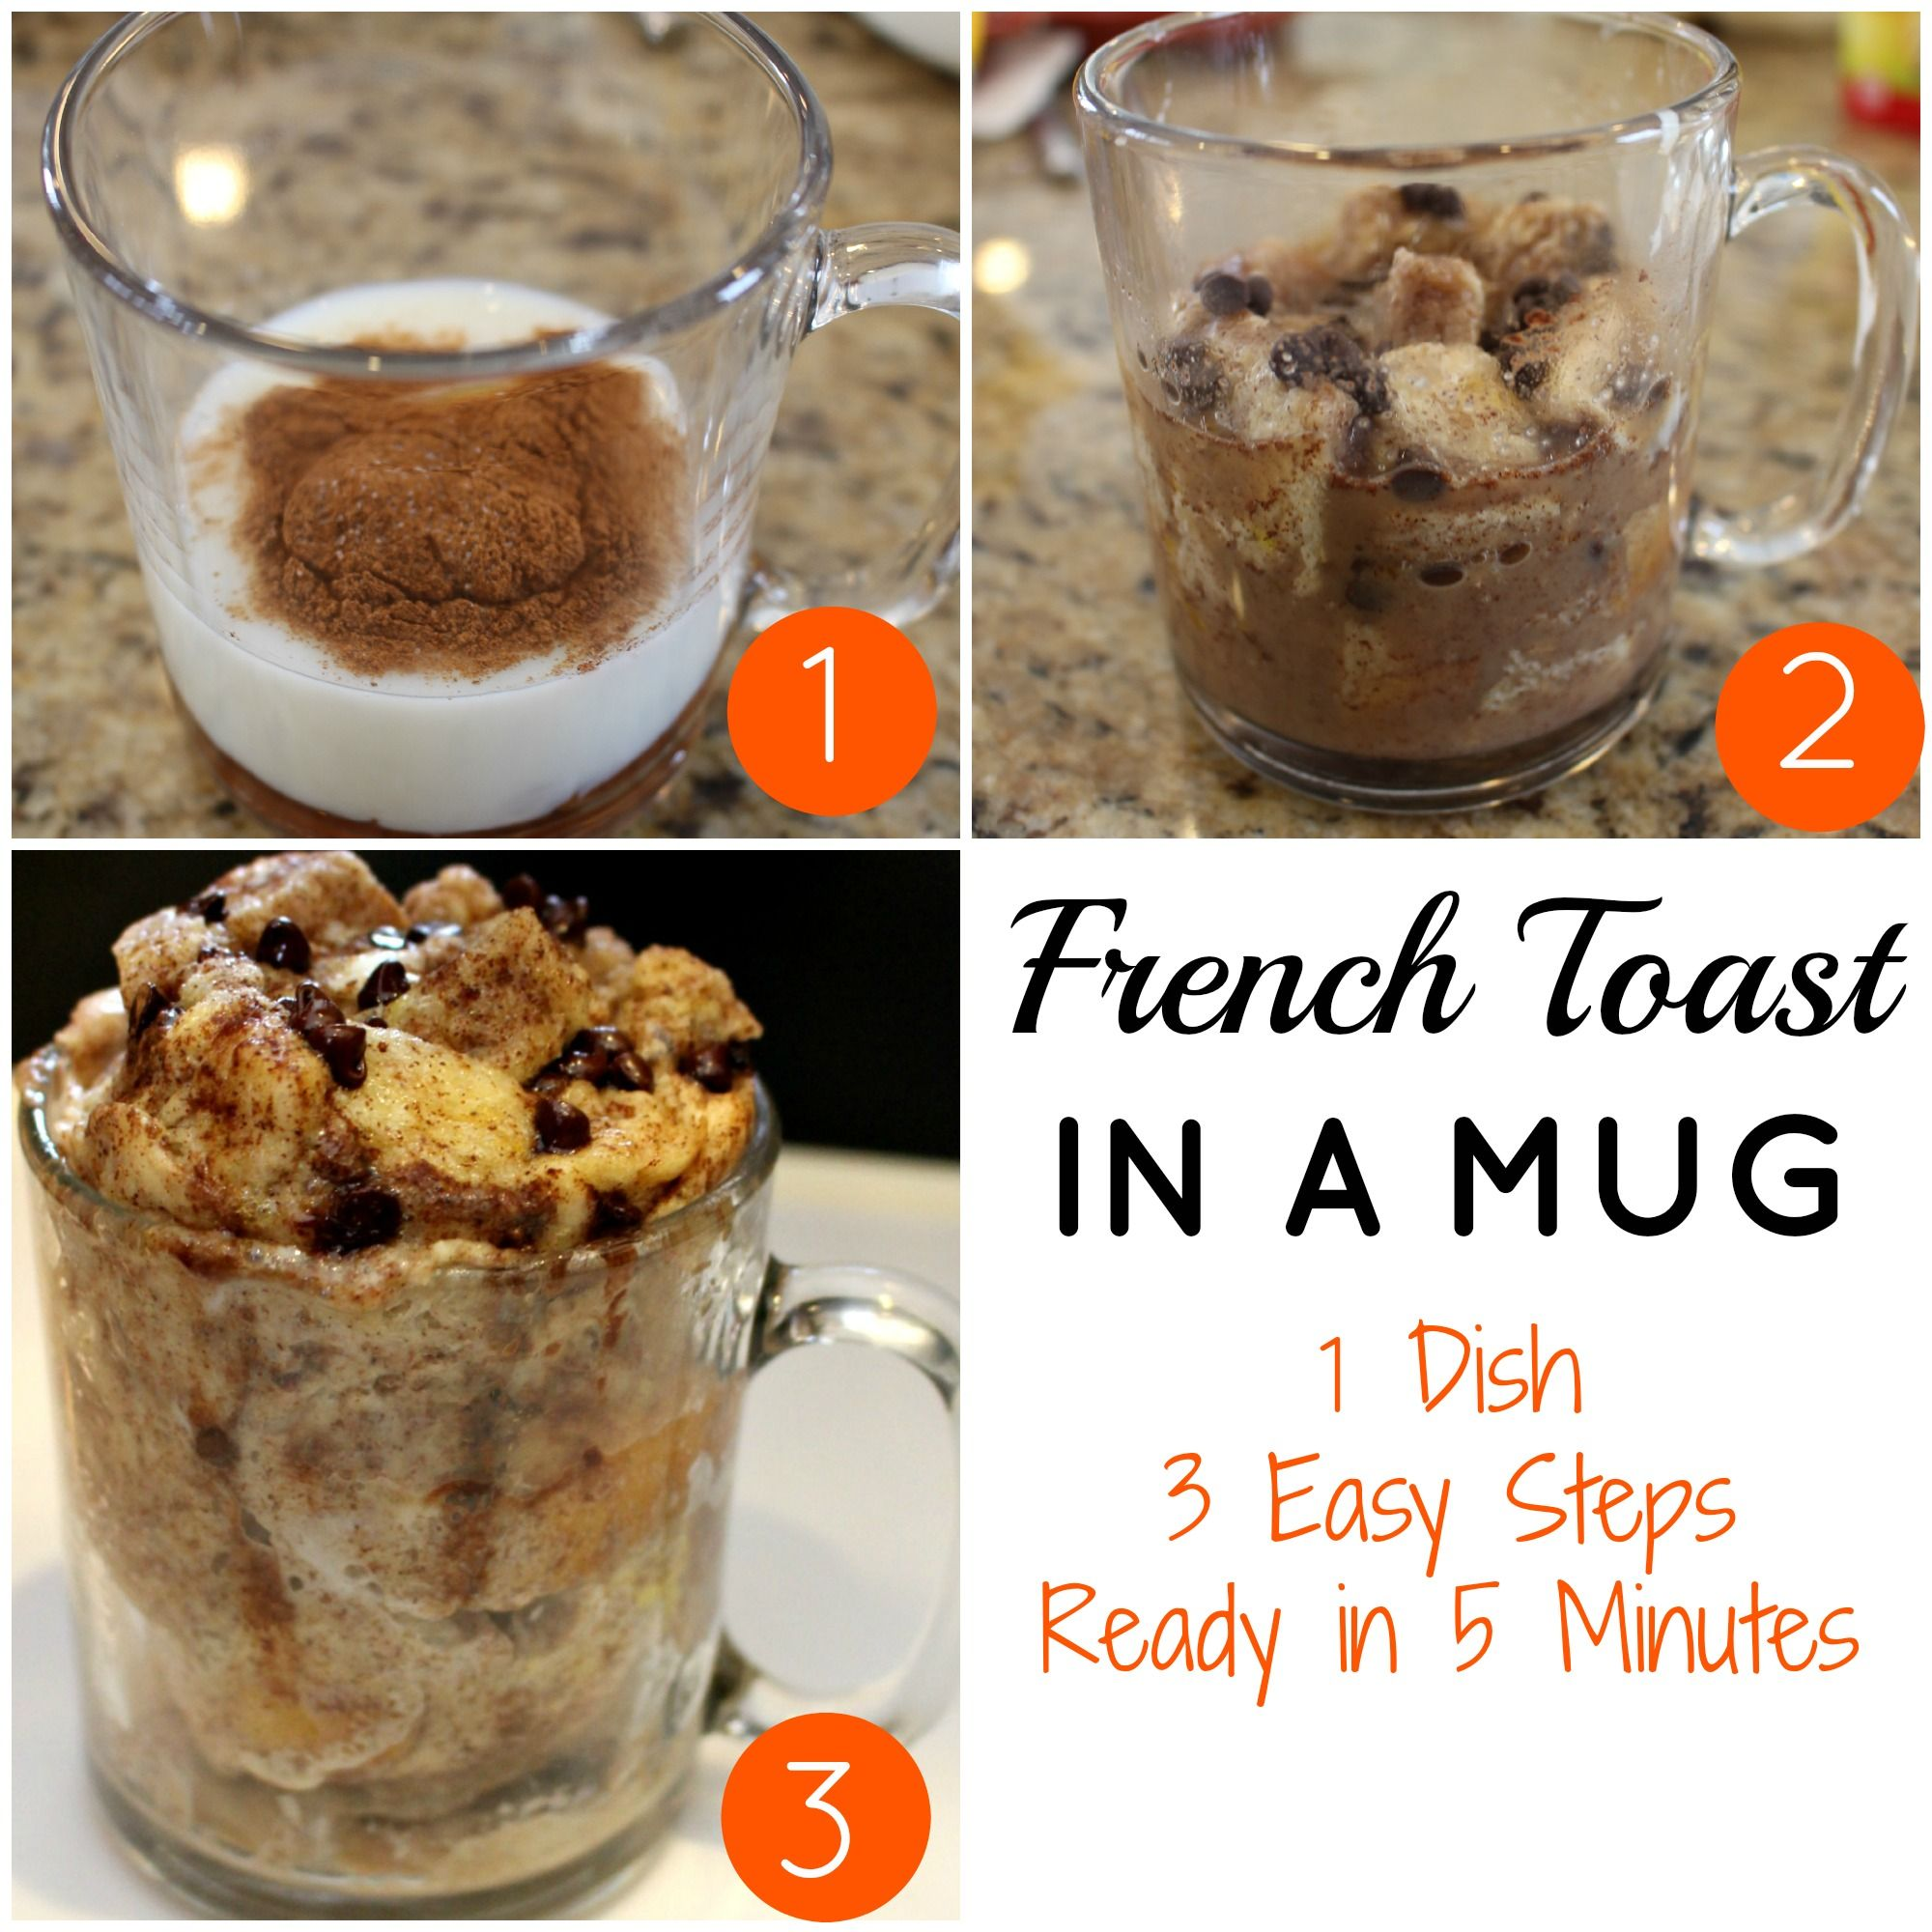 French Toast In A Mug  Quick, Easy & Delicious